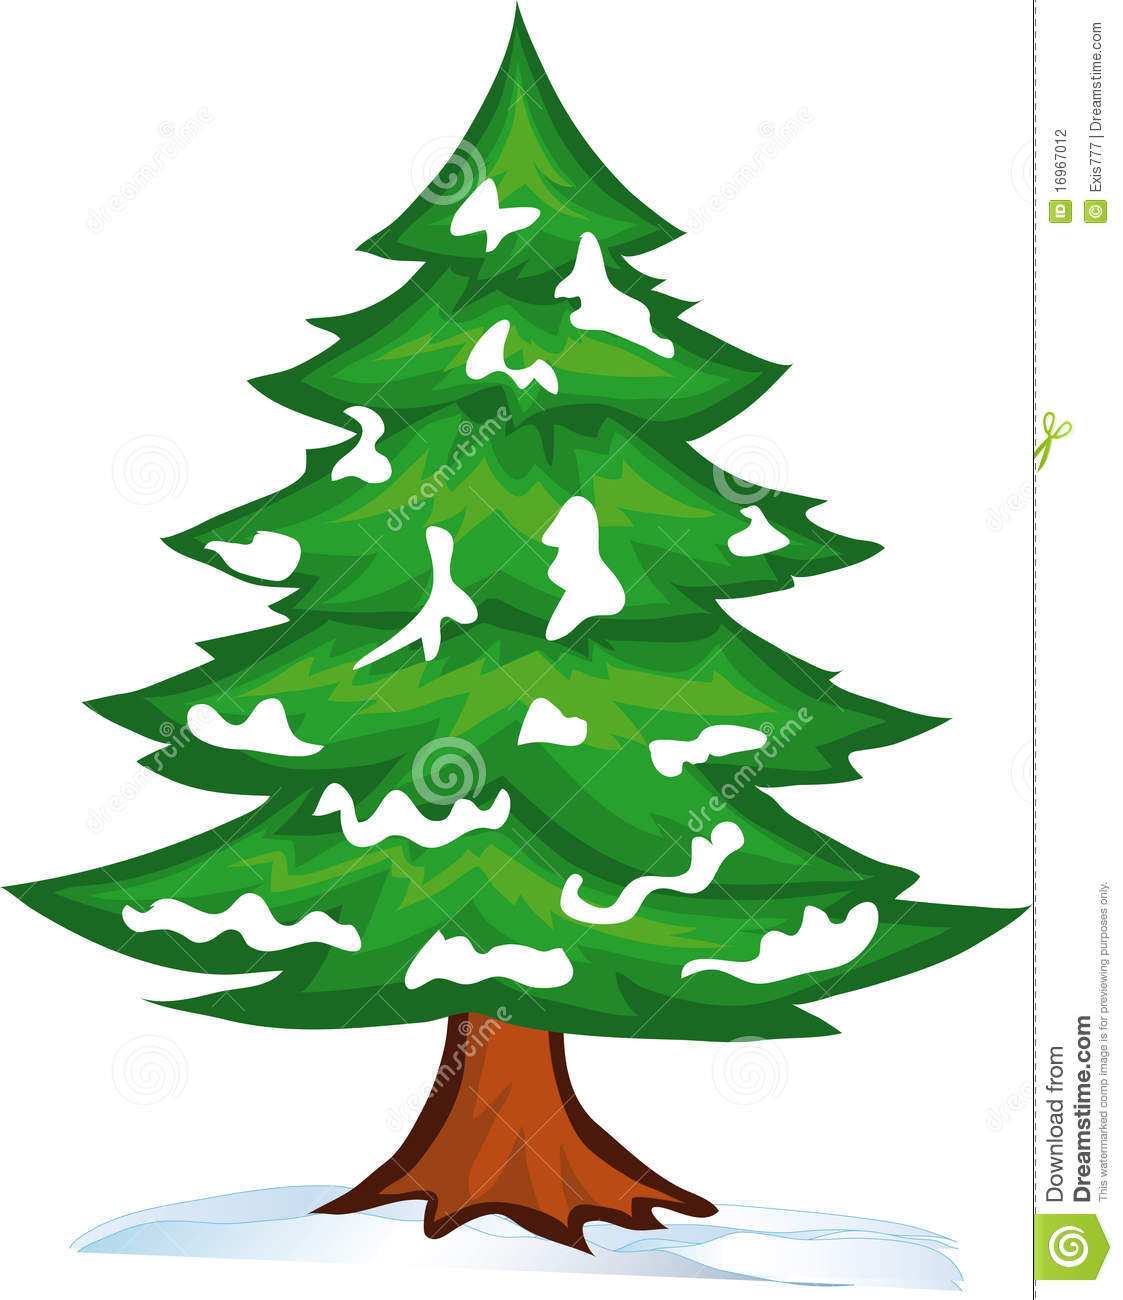 Fir Tree clipart #11, Download drawings